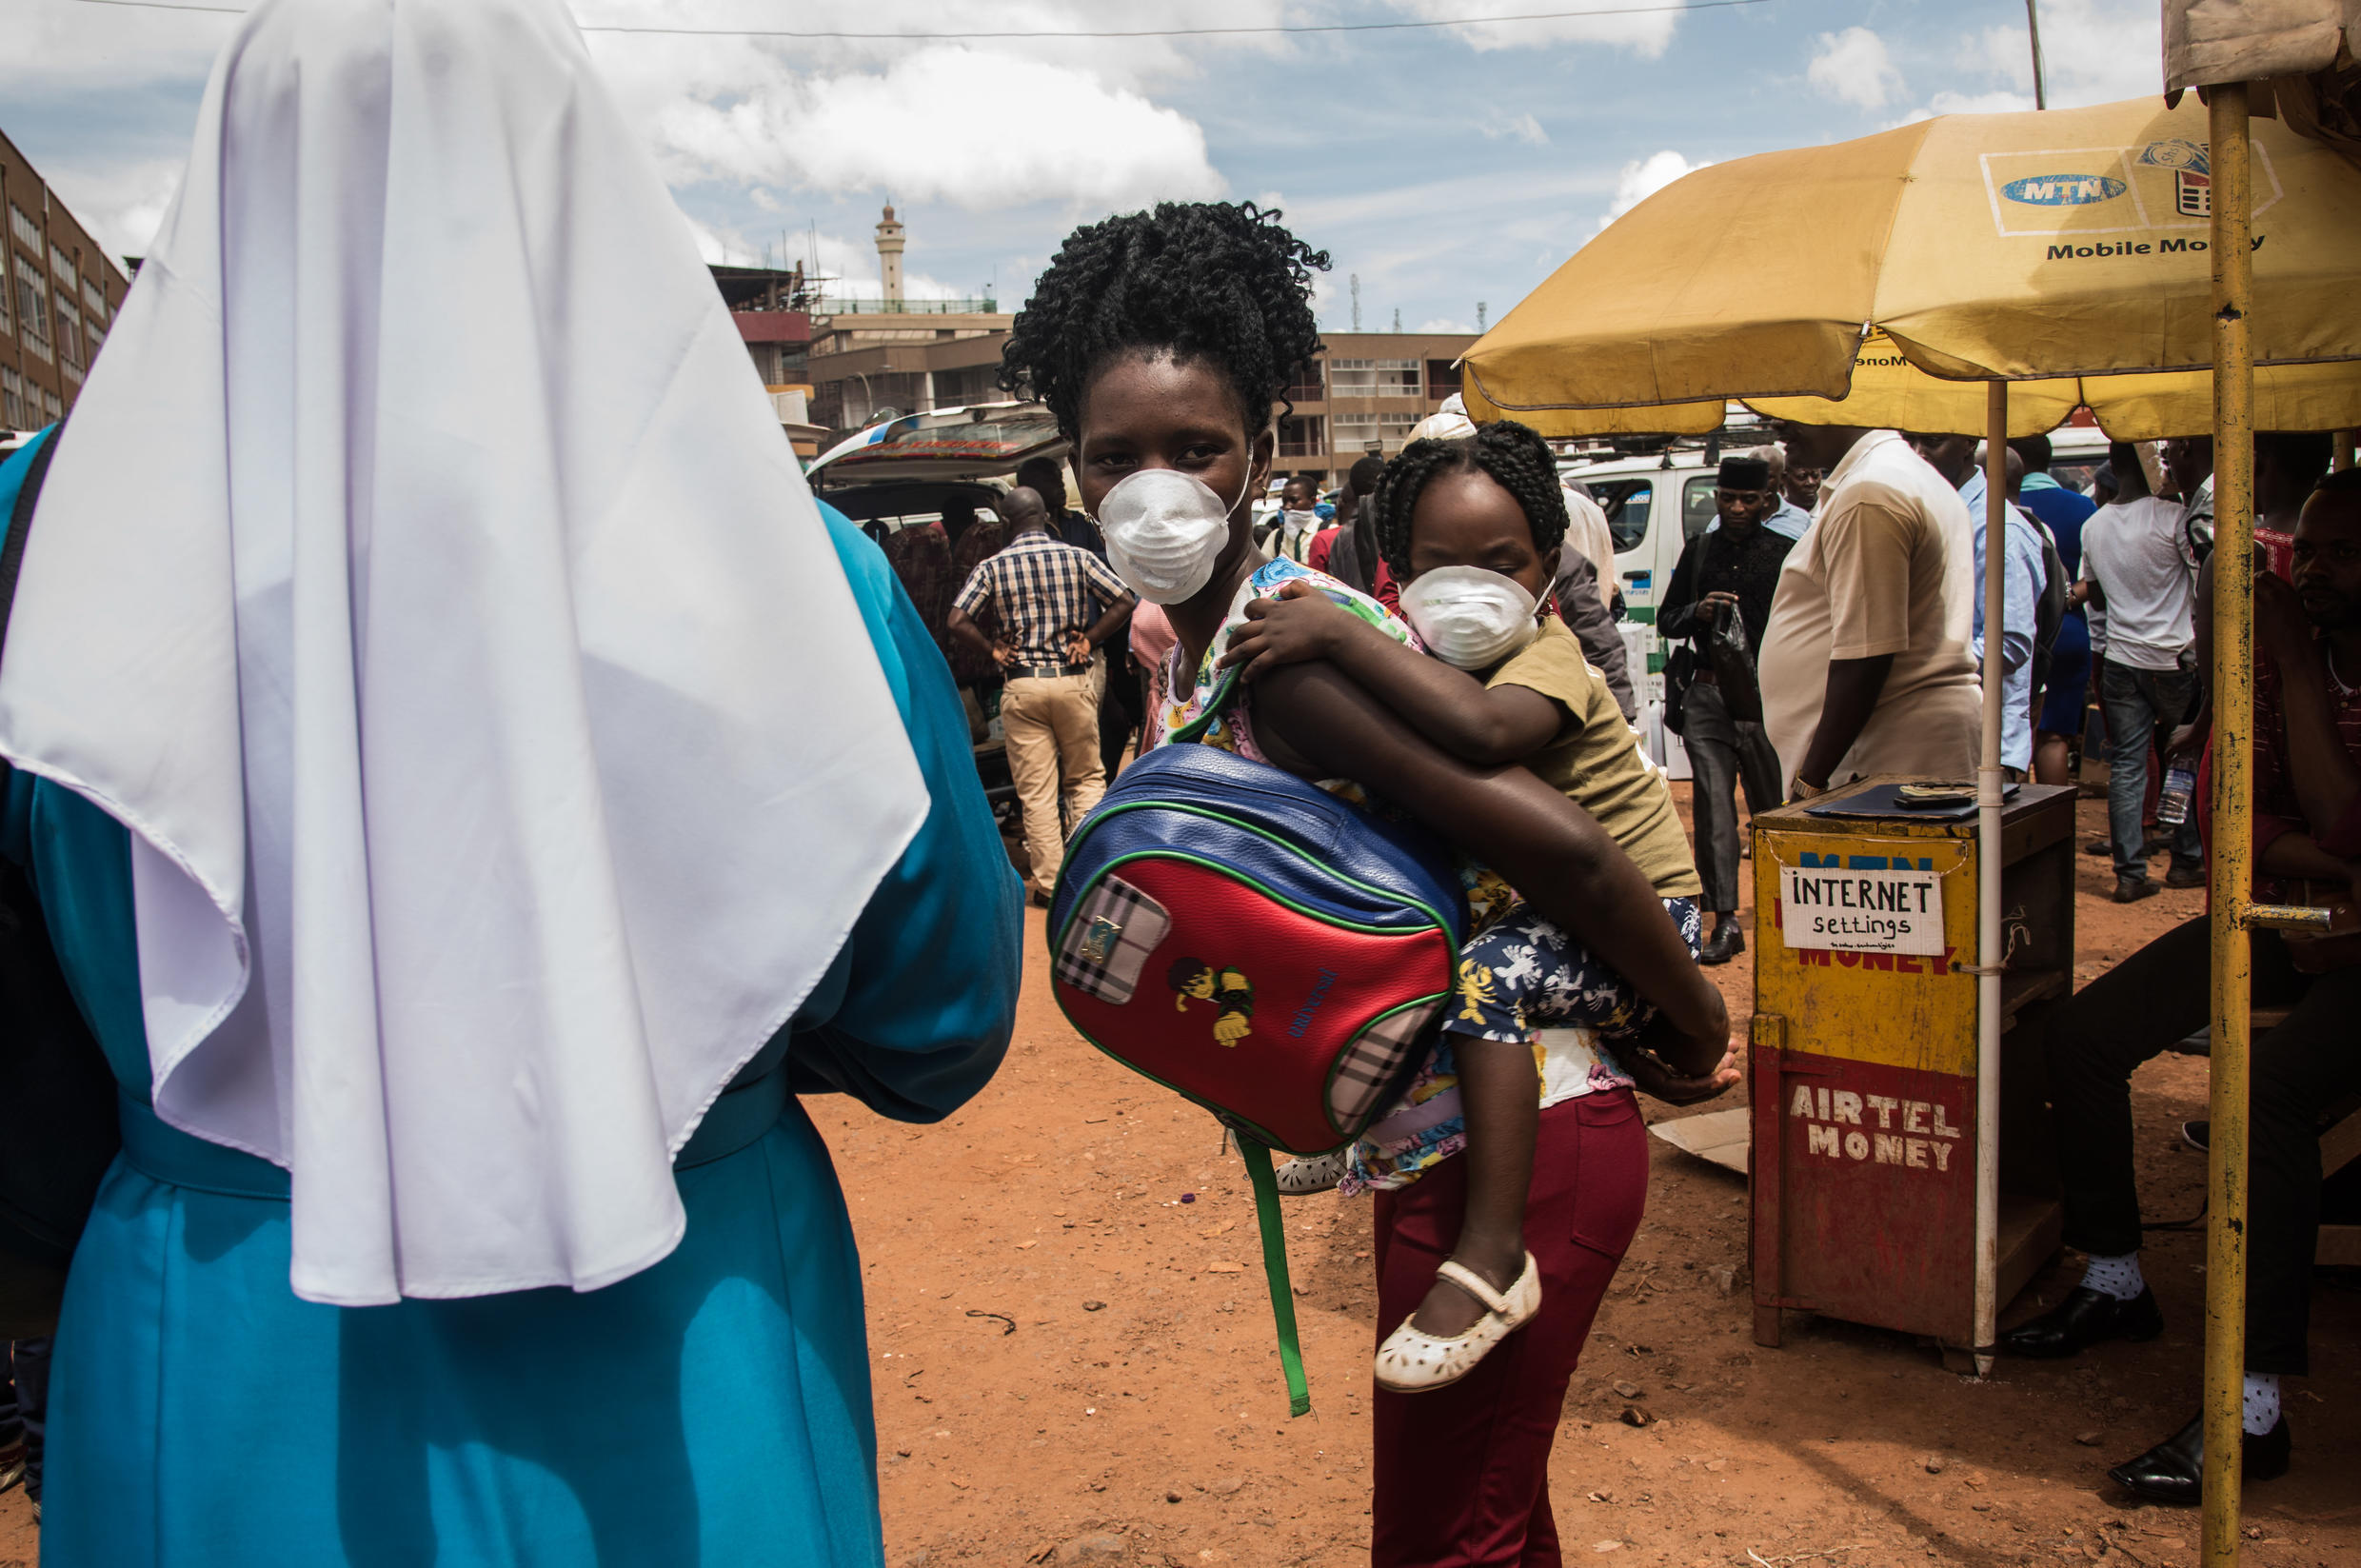 A mother and her child wear face masks as a preventive measure against Covid-19 at a bus park in Kampala, Uganda on 20 March 2020.